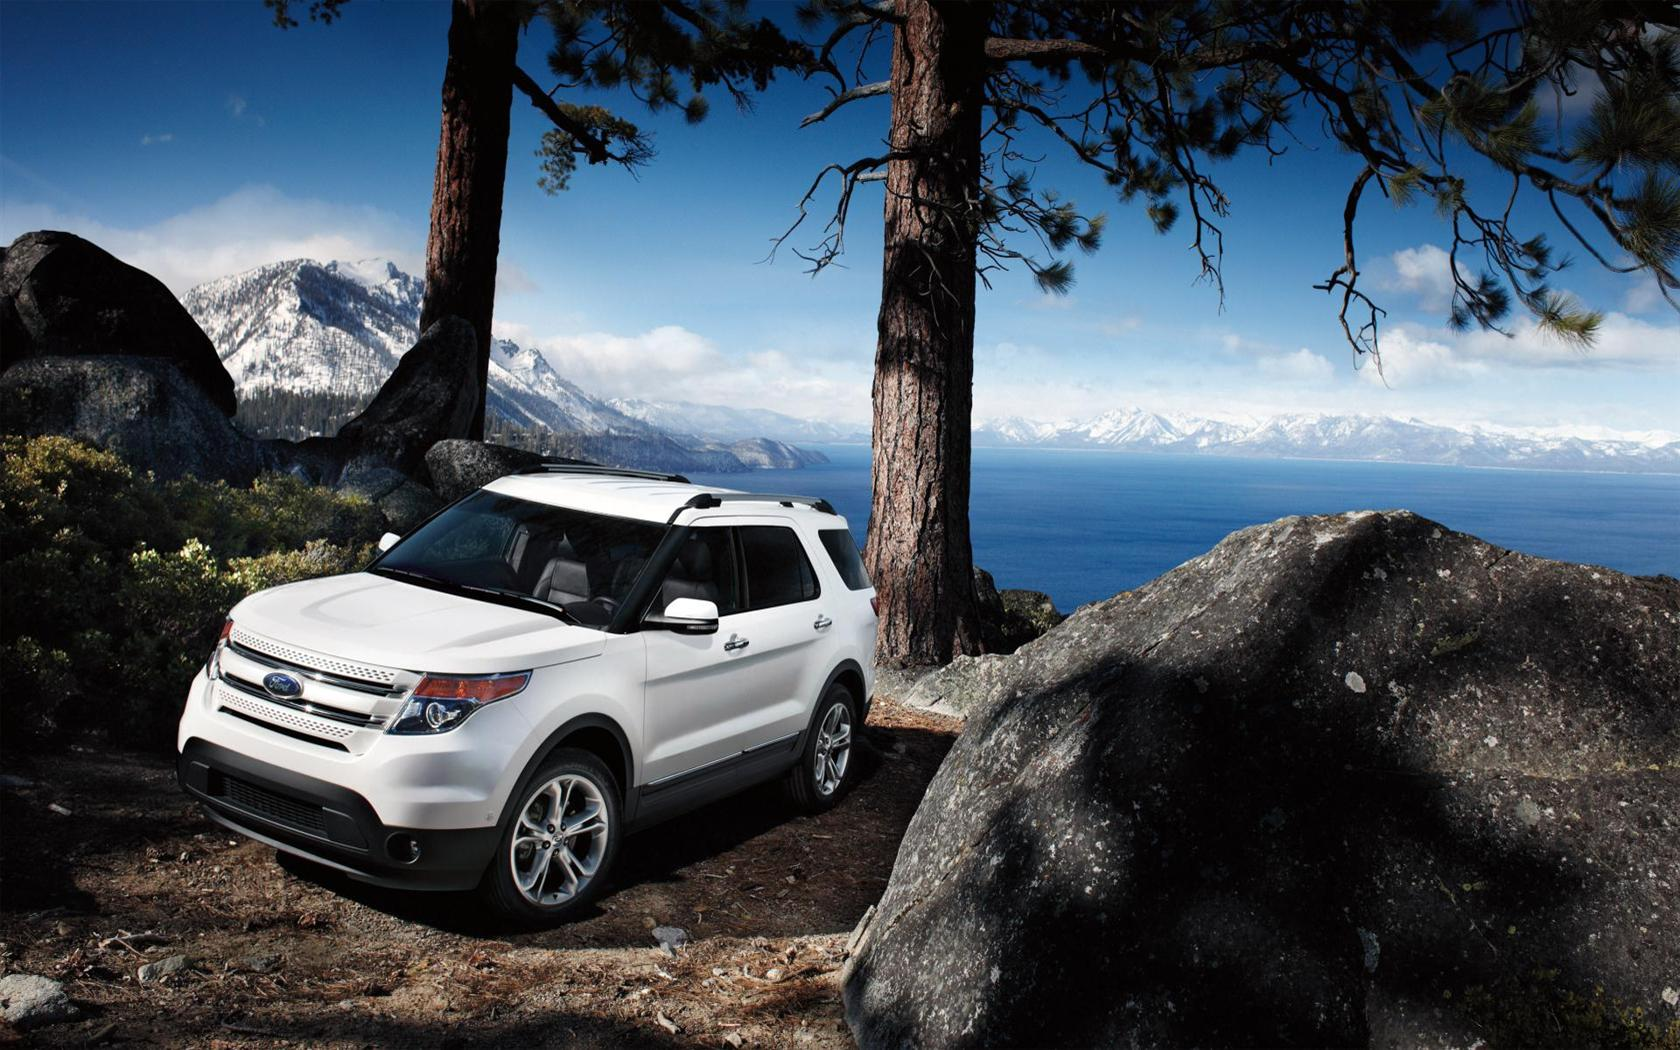 1680x1050 - Ford Explorer Wallpapers 13